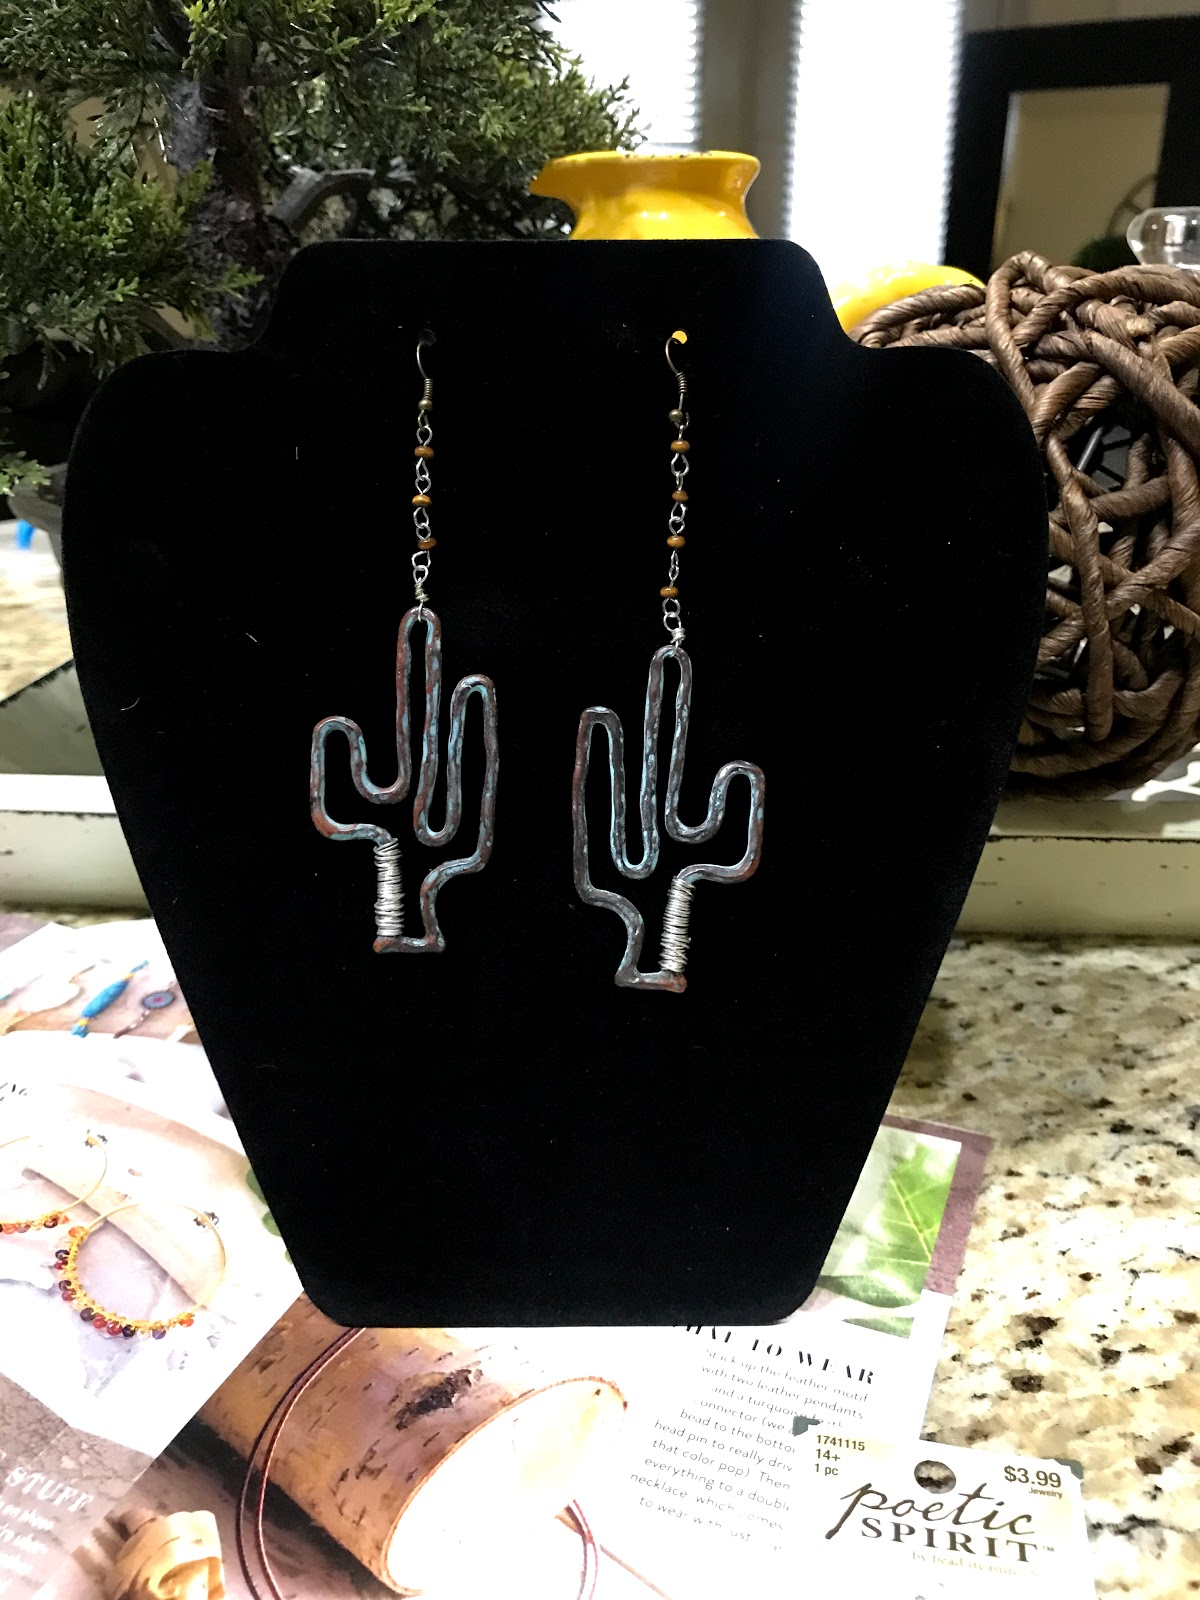 The complete cactus earring look made with poetic spirit components